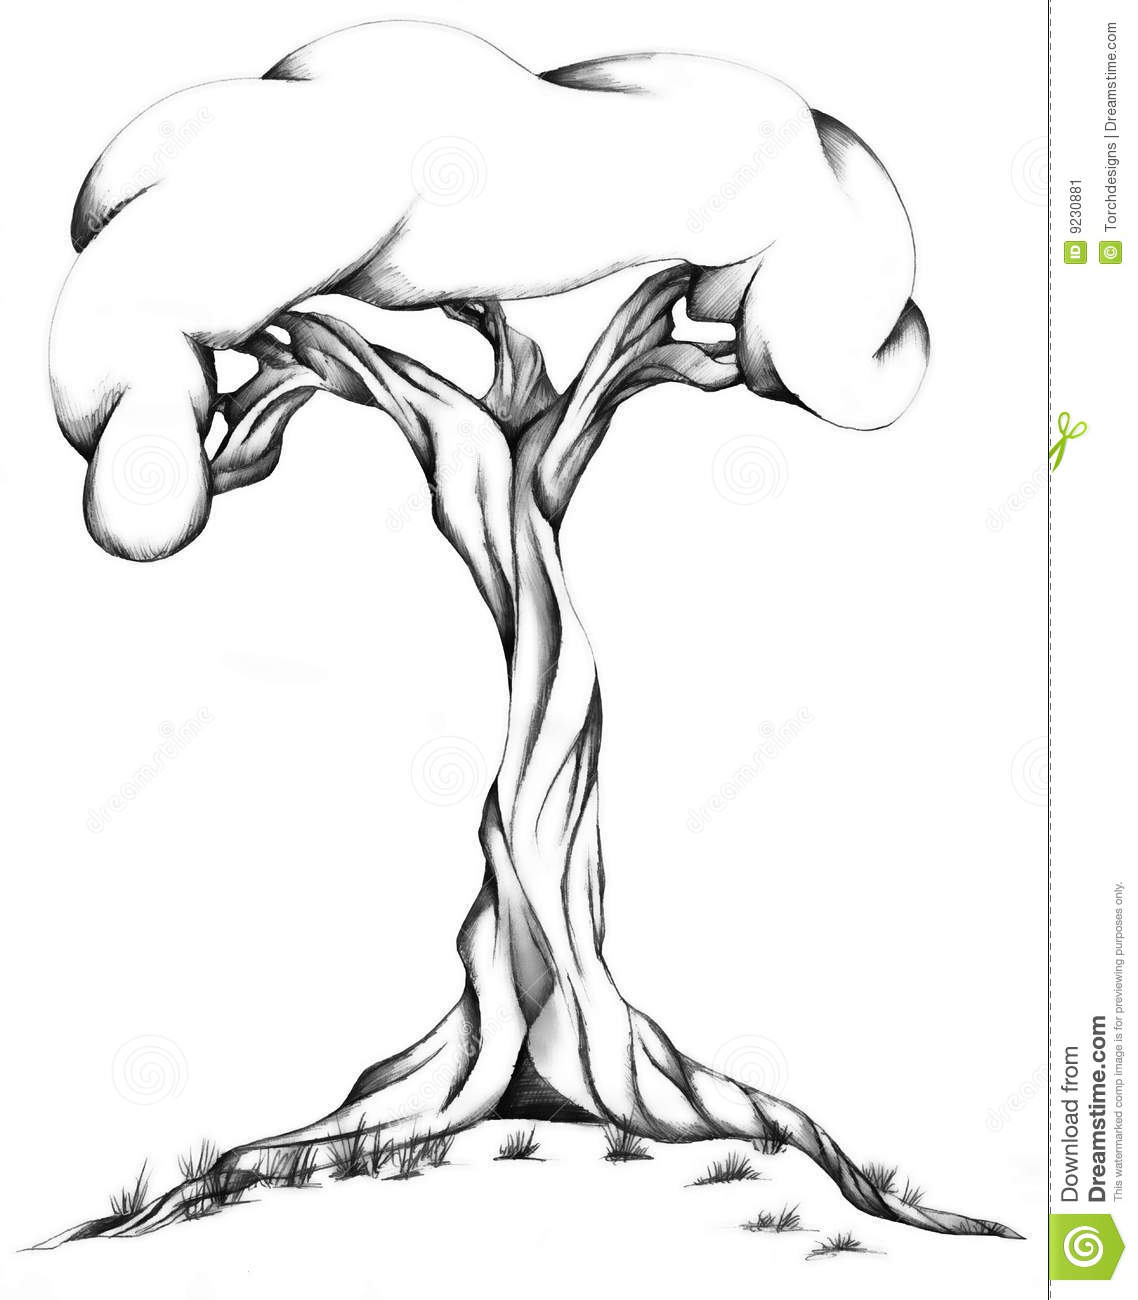 Twisted Tree coloring #16, Download drawings